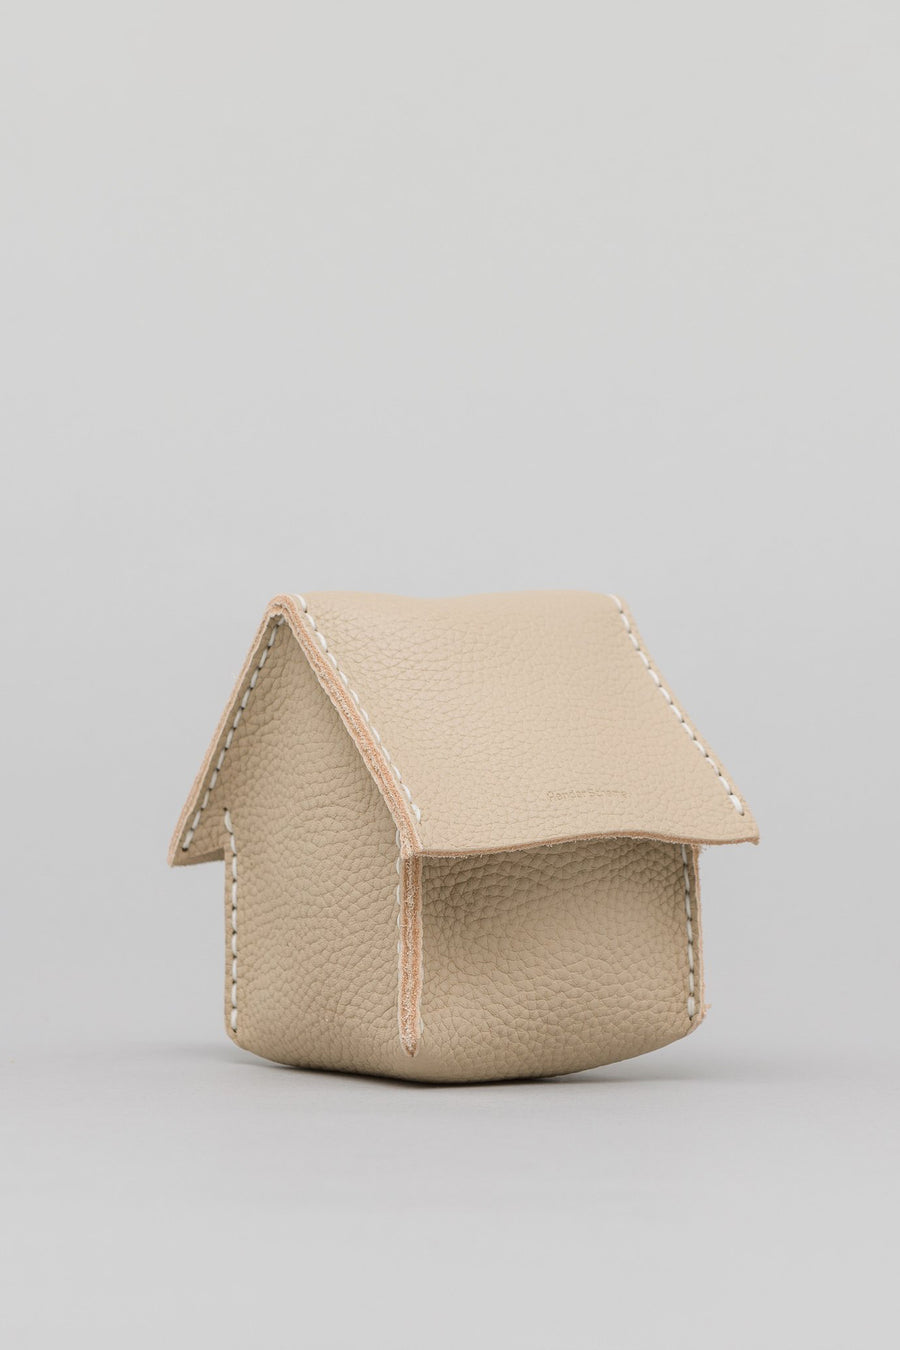 Hender Scheme Home Coin Bank in Natural - Notre